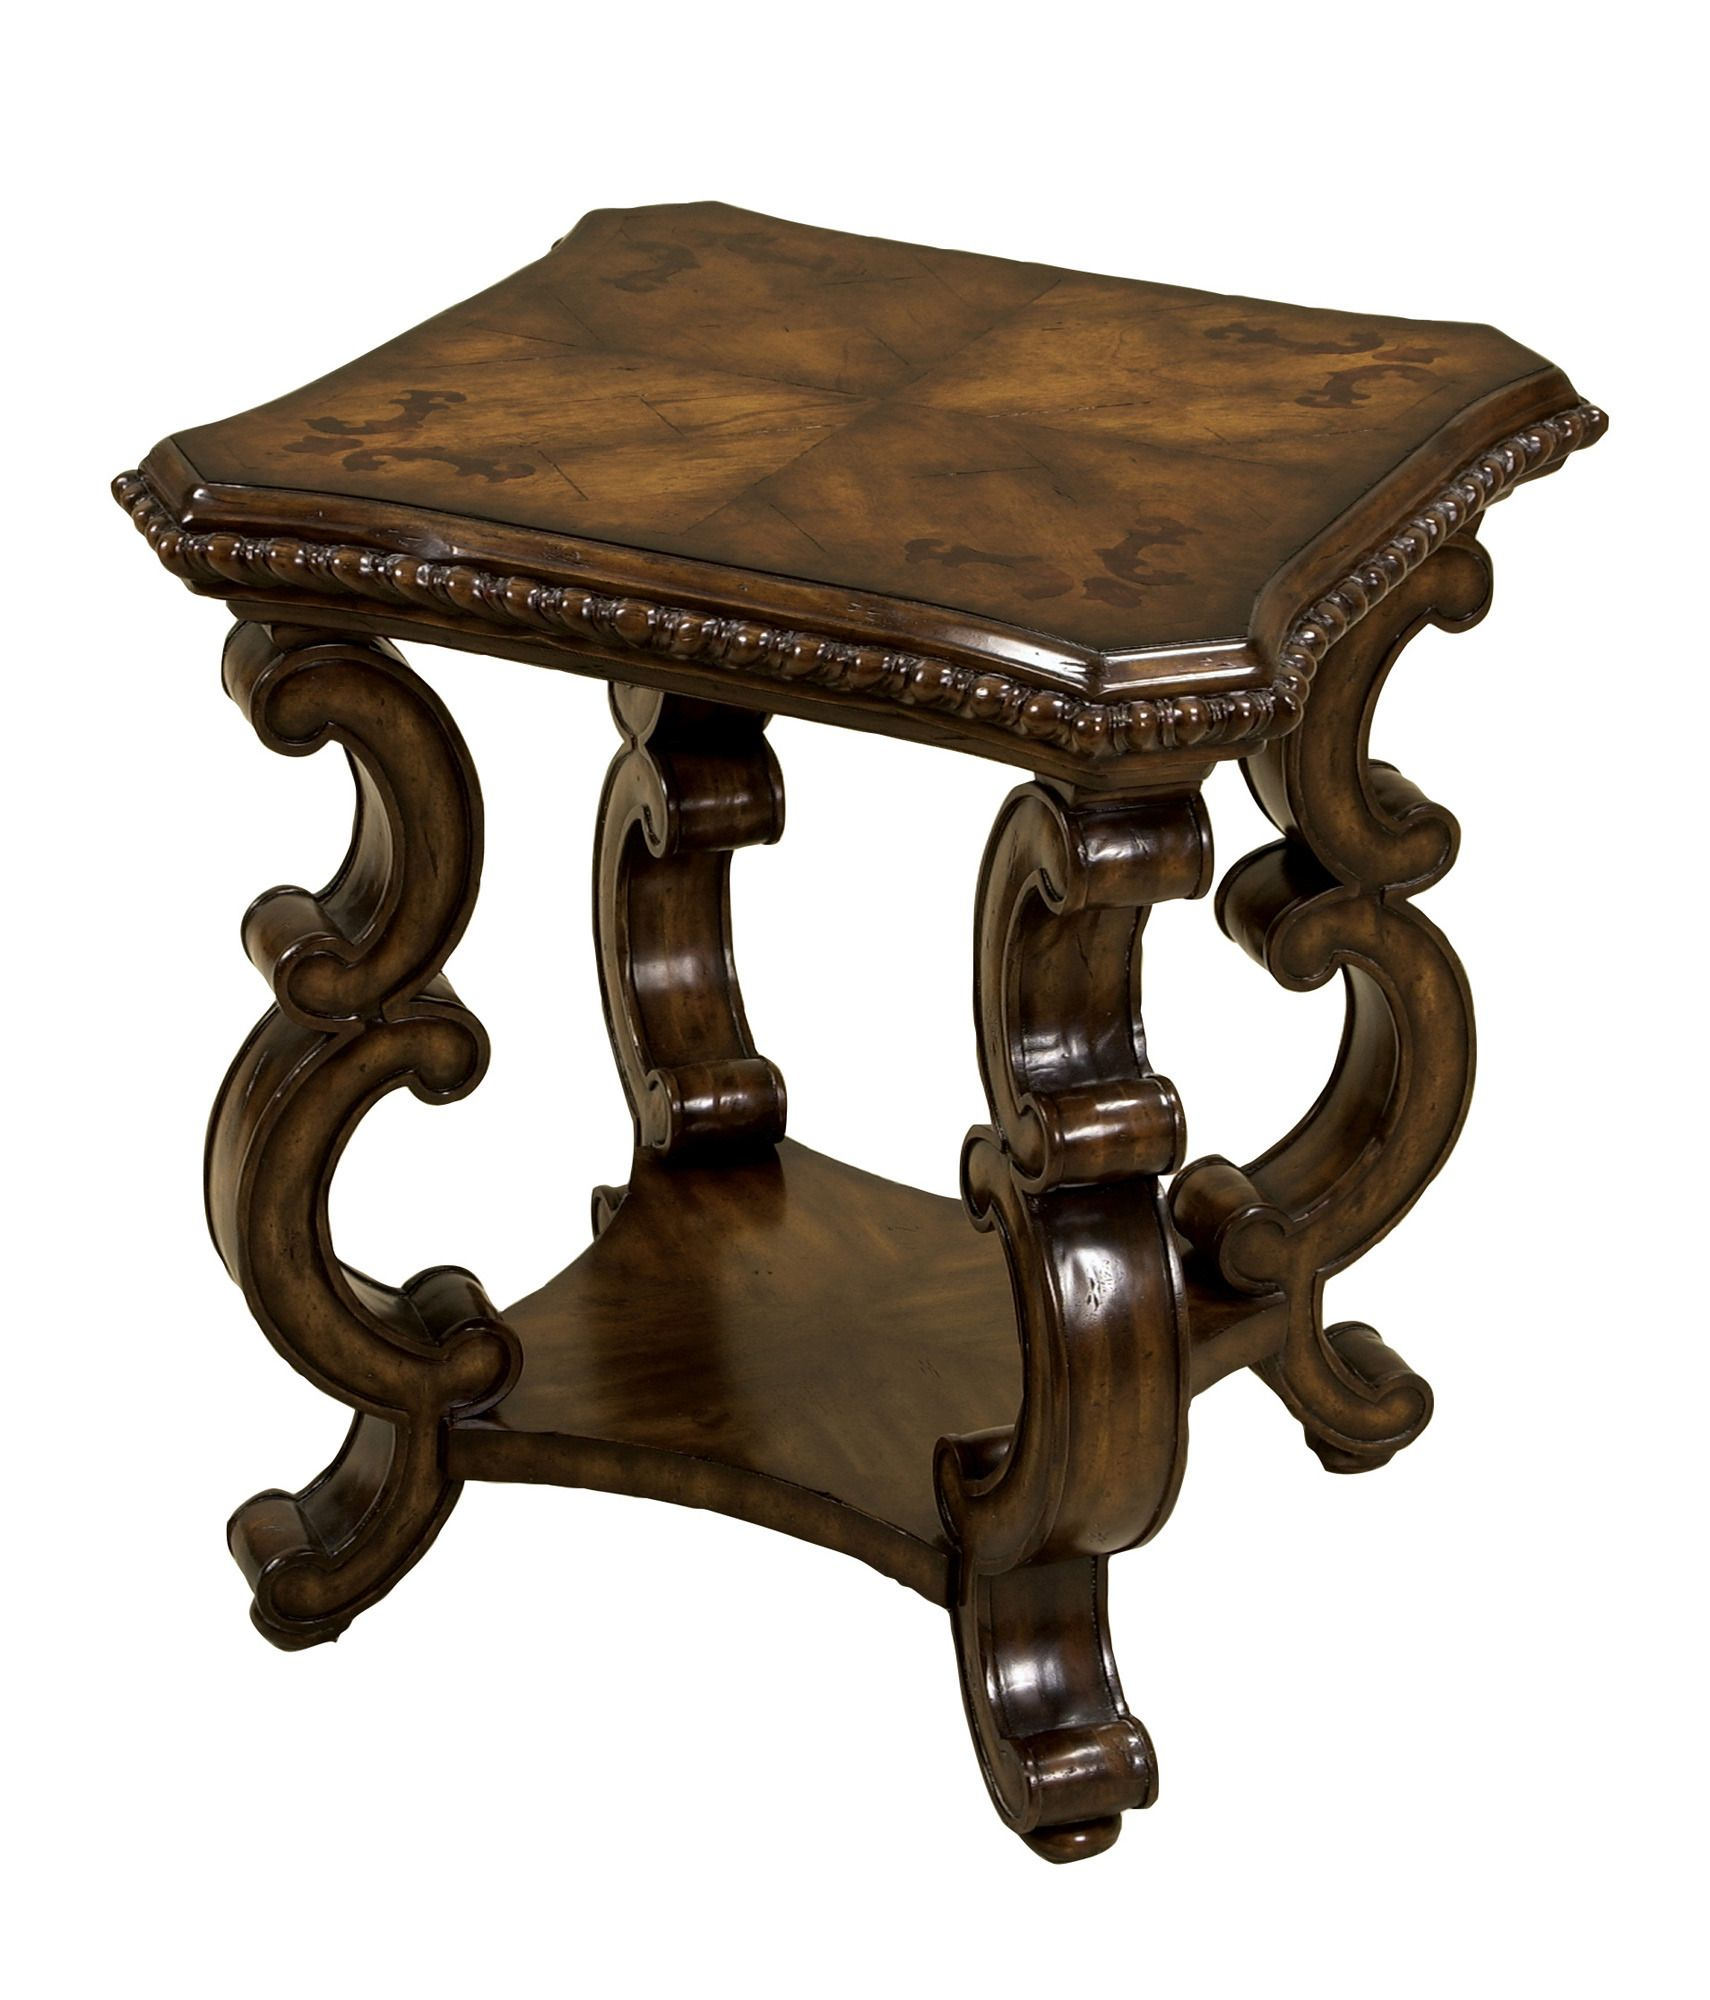 accent table walnut maitland smith home gallery west elm parsons coffee wicker basket end small round marble metal bookshelf driftwood pier one imports dining room office depot